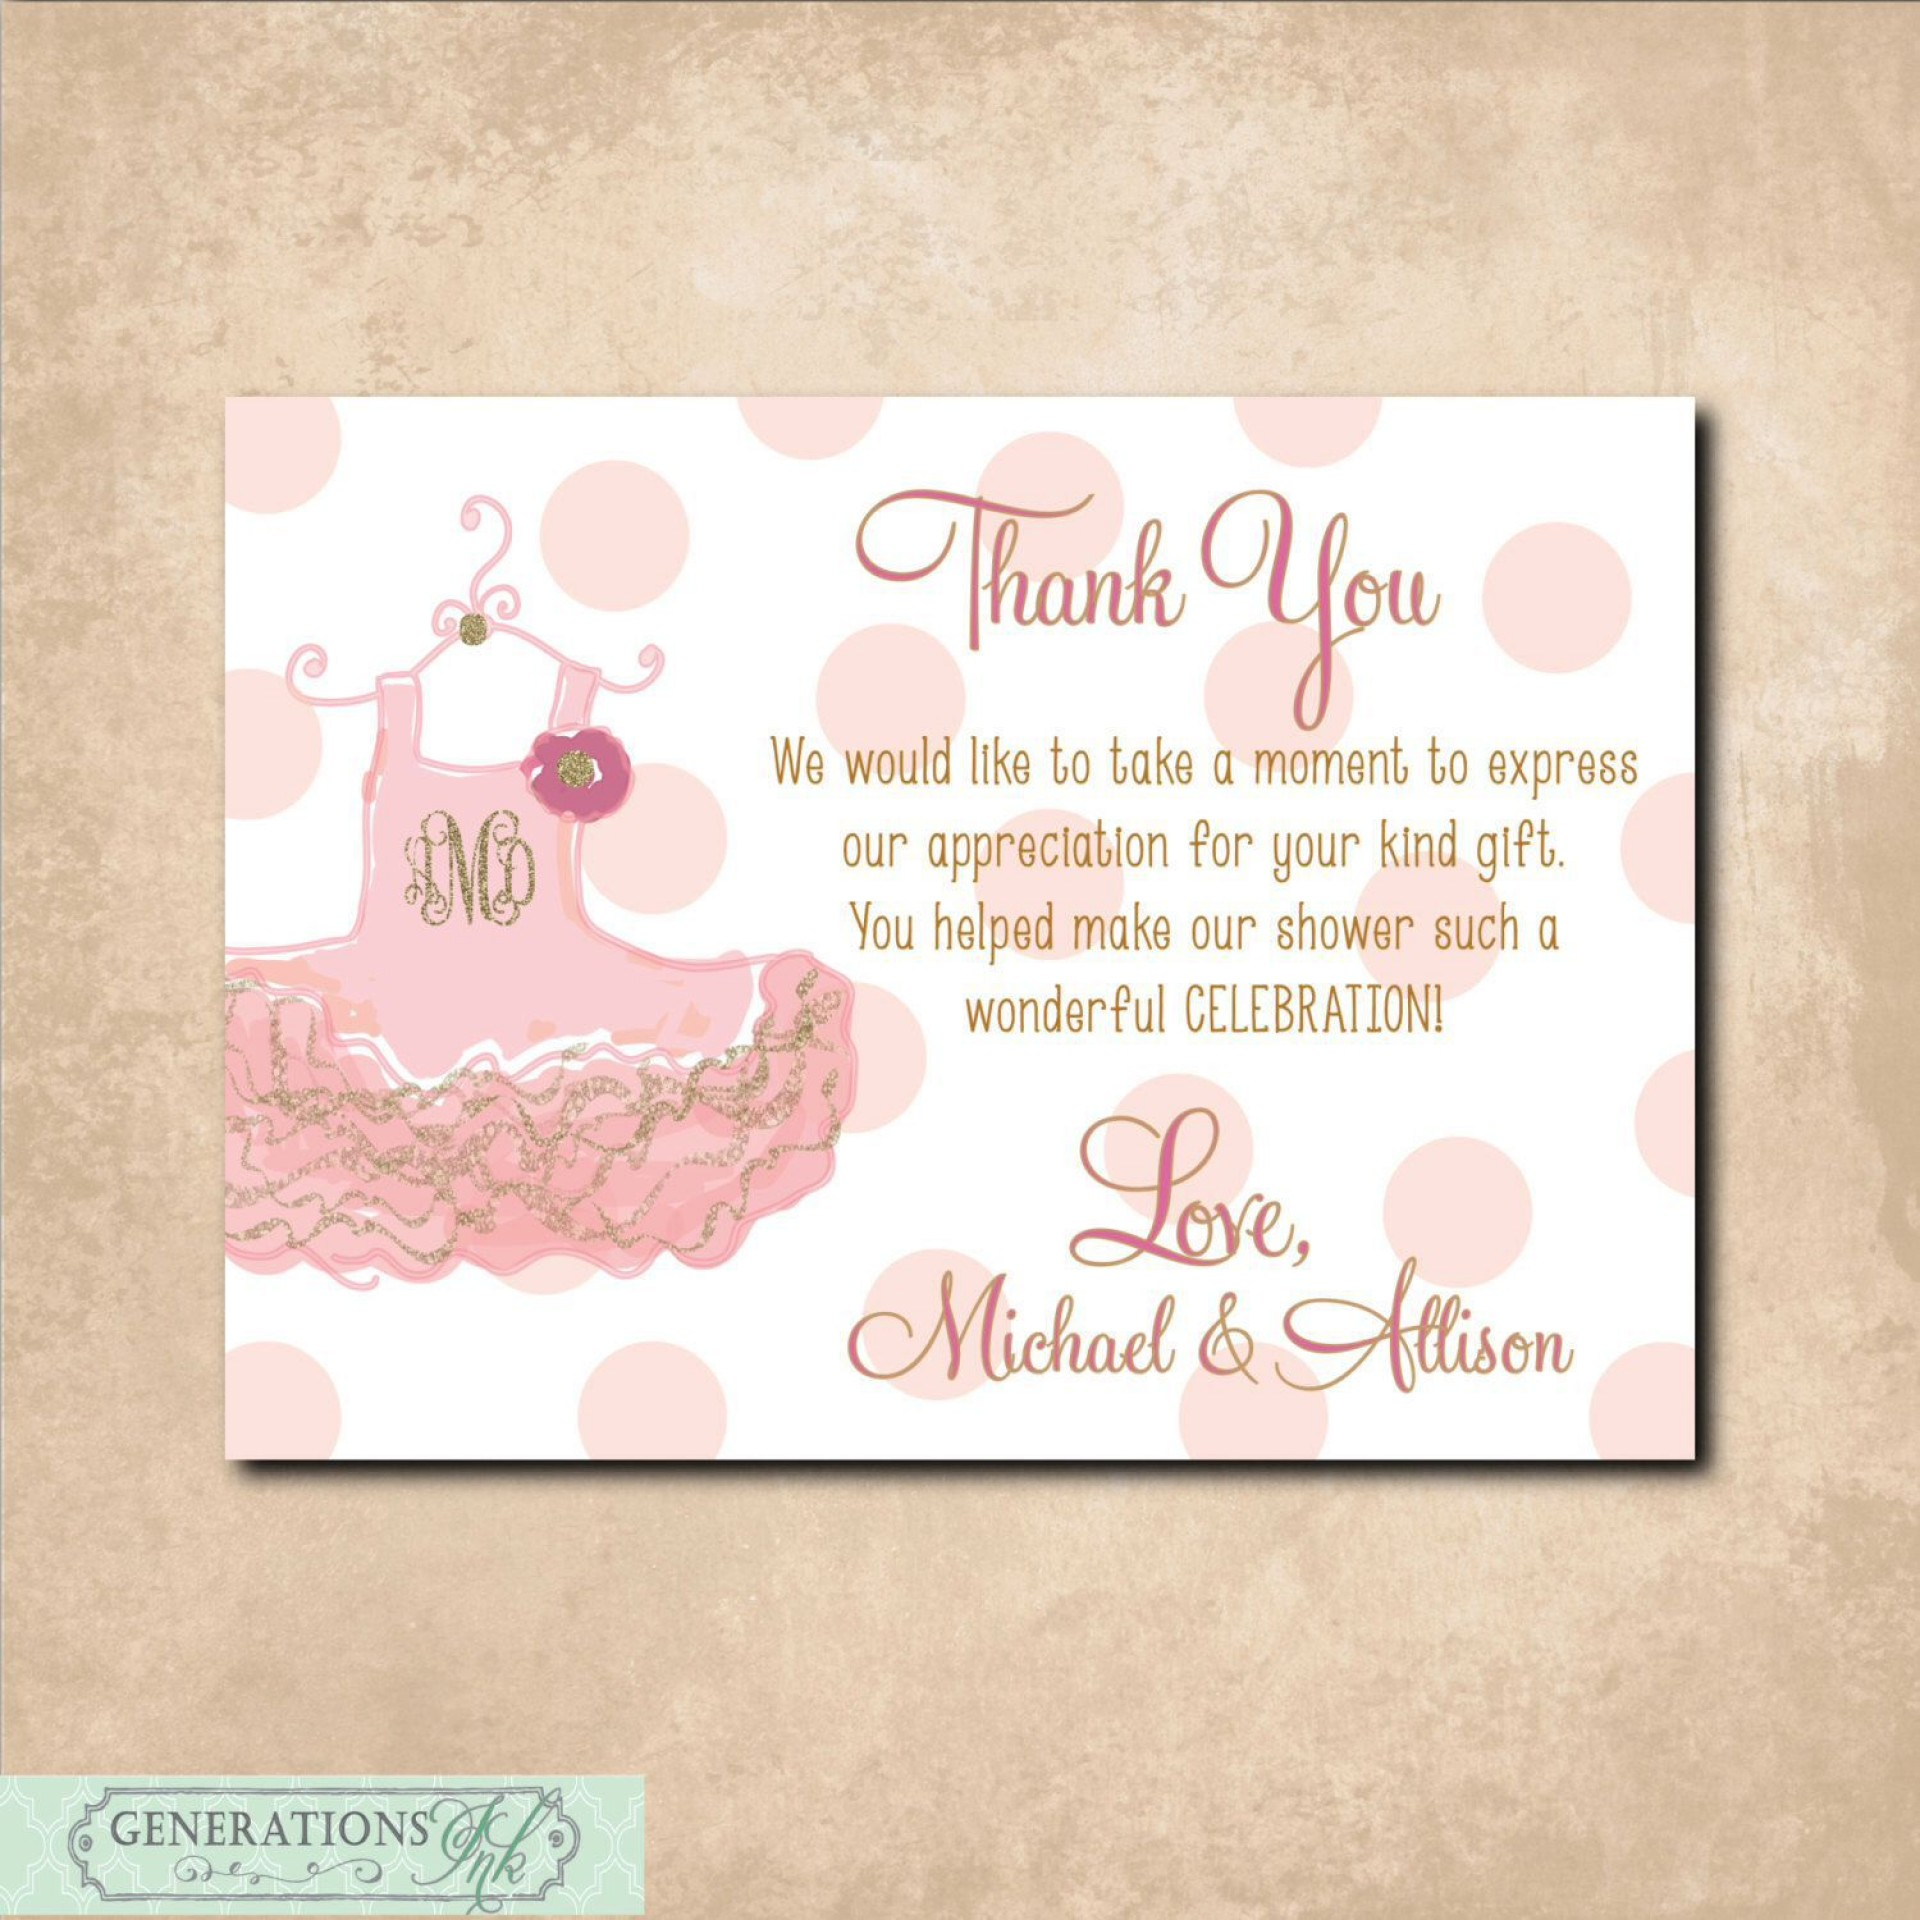 001 Imposing Thank You Note Template Baby Shower Inspiration  Card Free Sample For Letter Gift1920